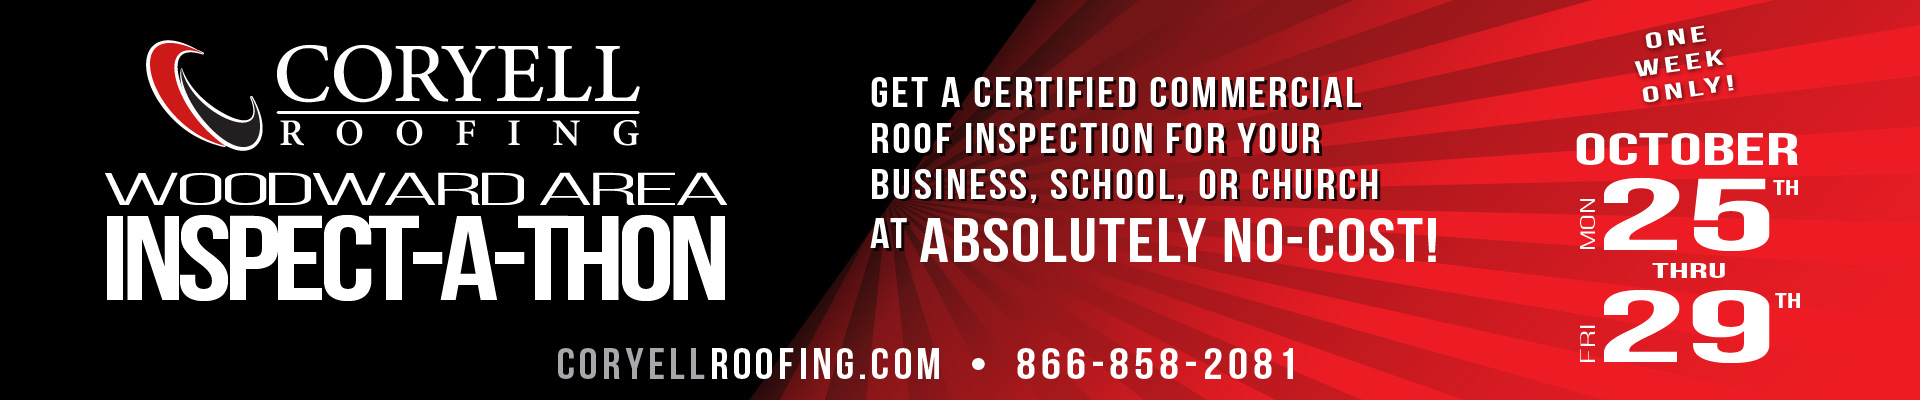 Coryell Roofing Inspect-a-thon - Woodward OK